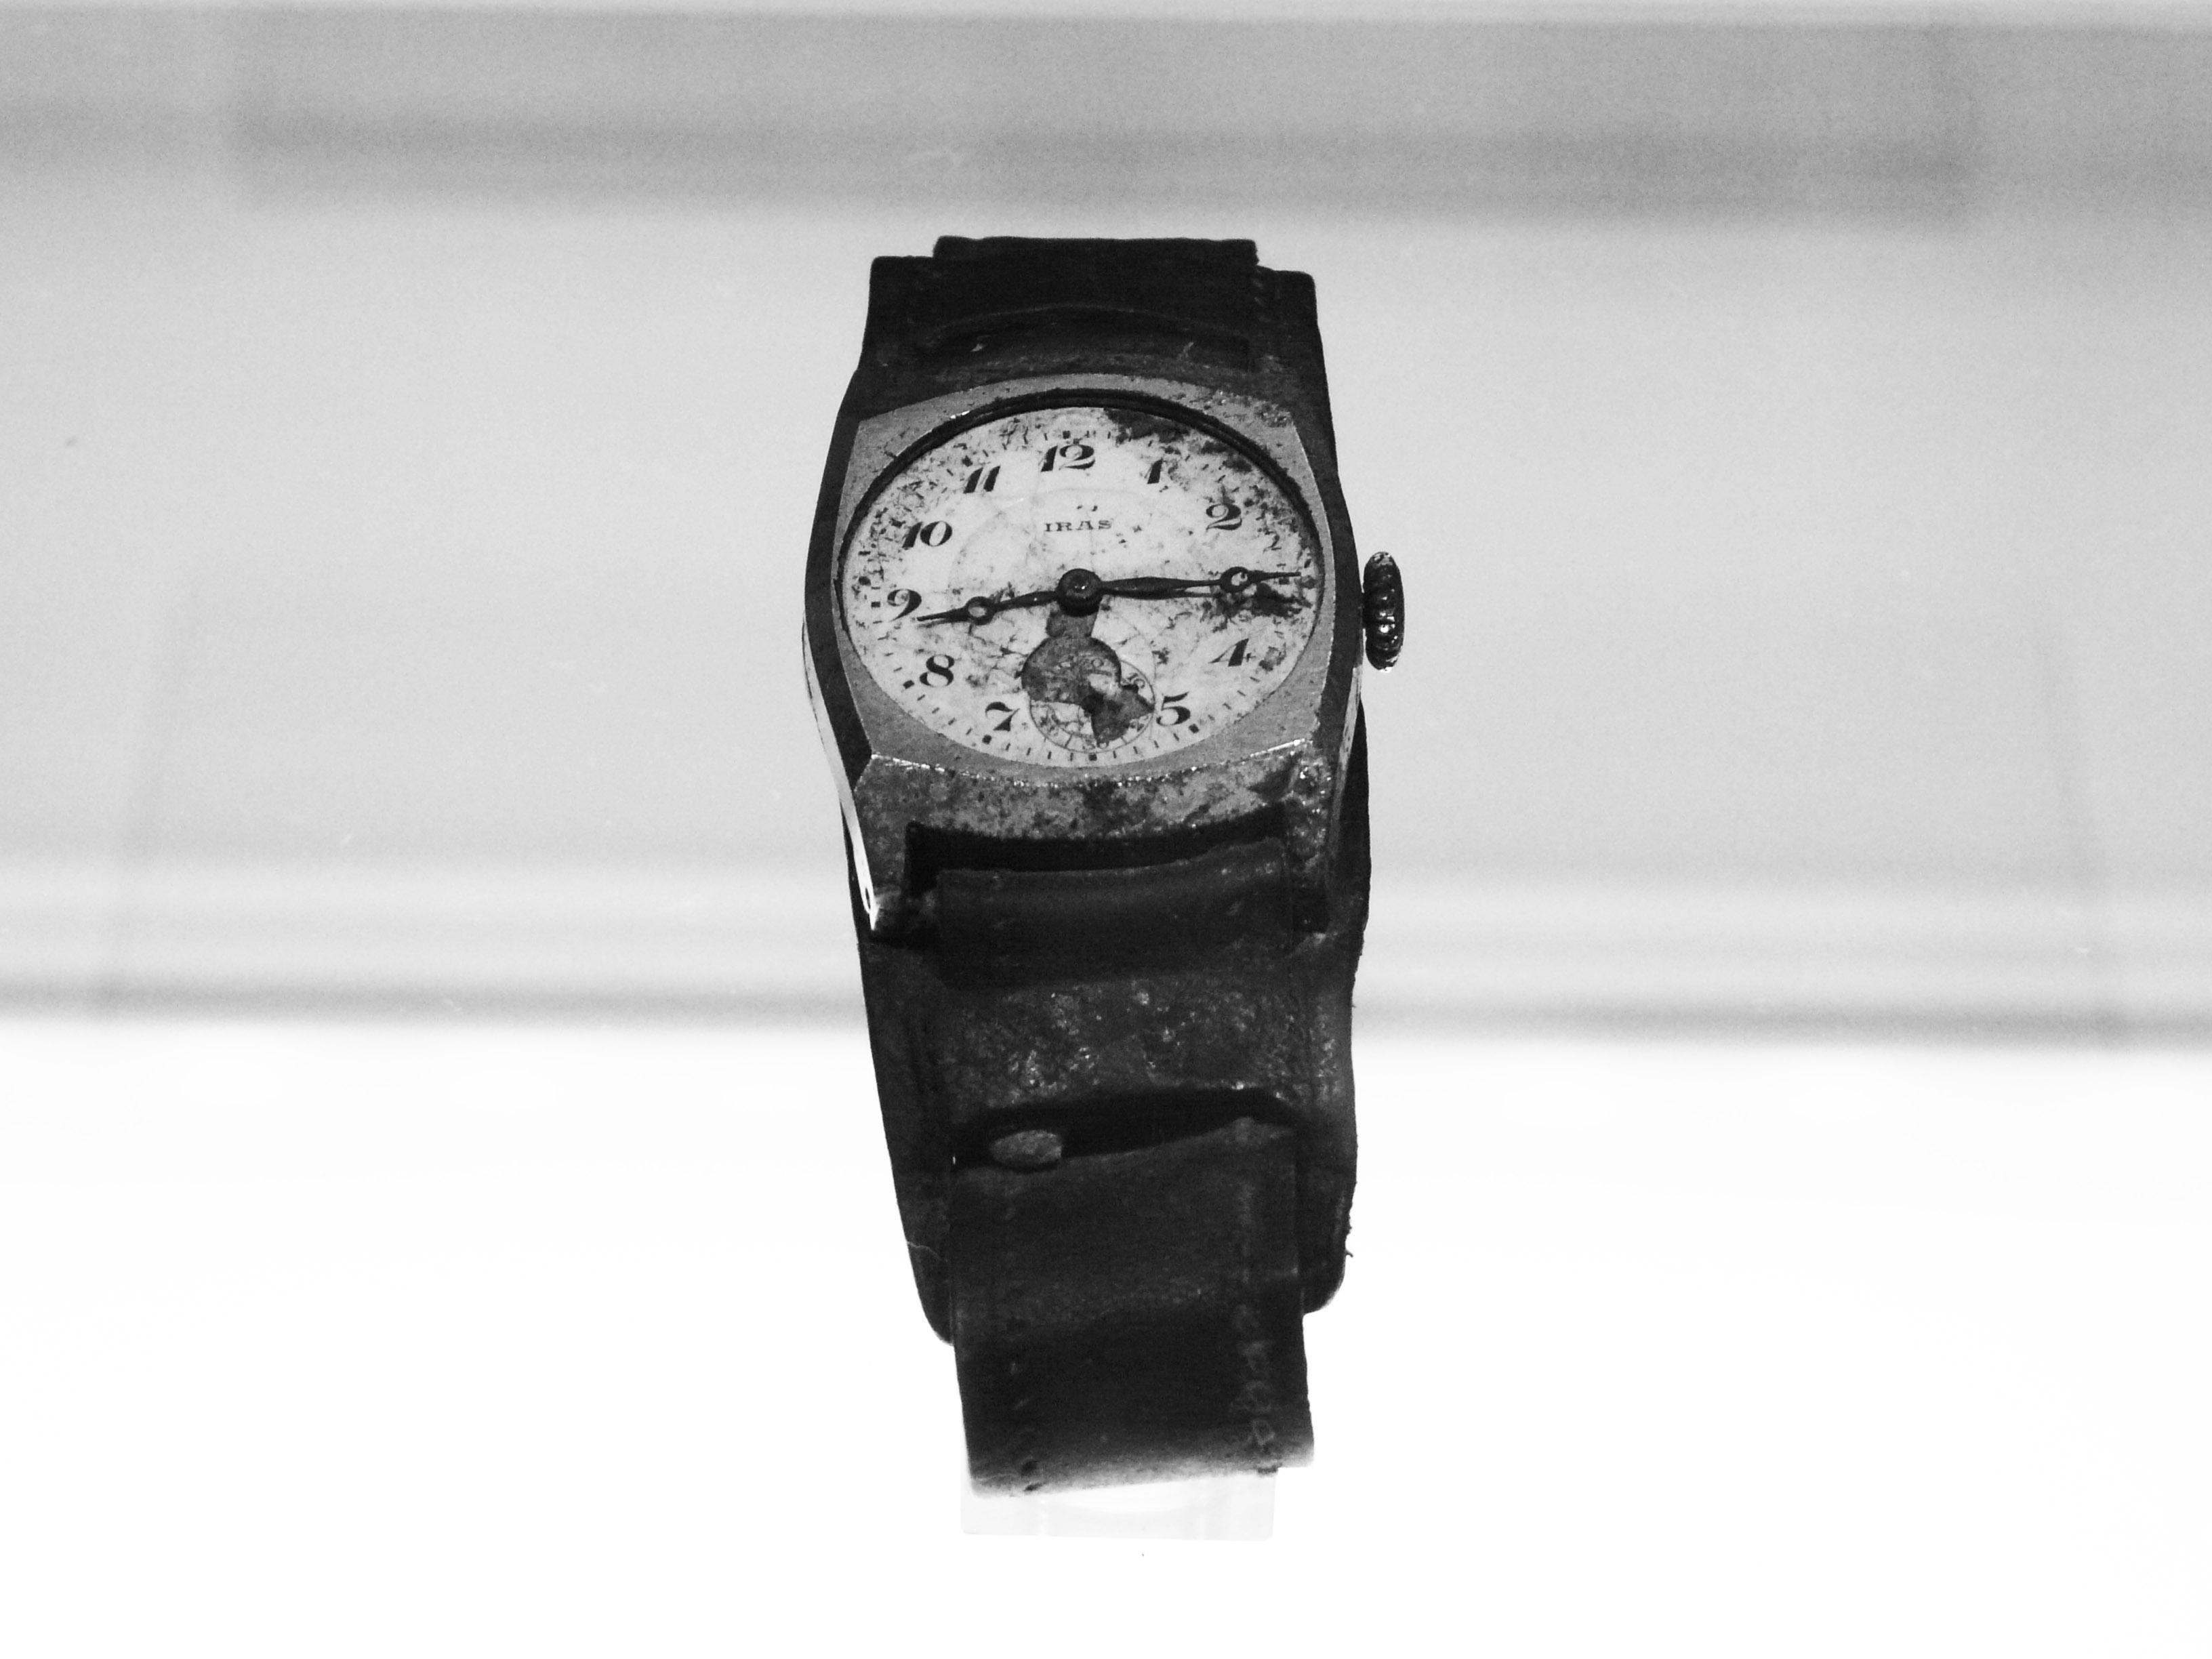 A watch recovered from Hiroshima, stopped at 8:15 AM,  the moment of the bombing